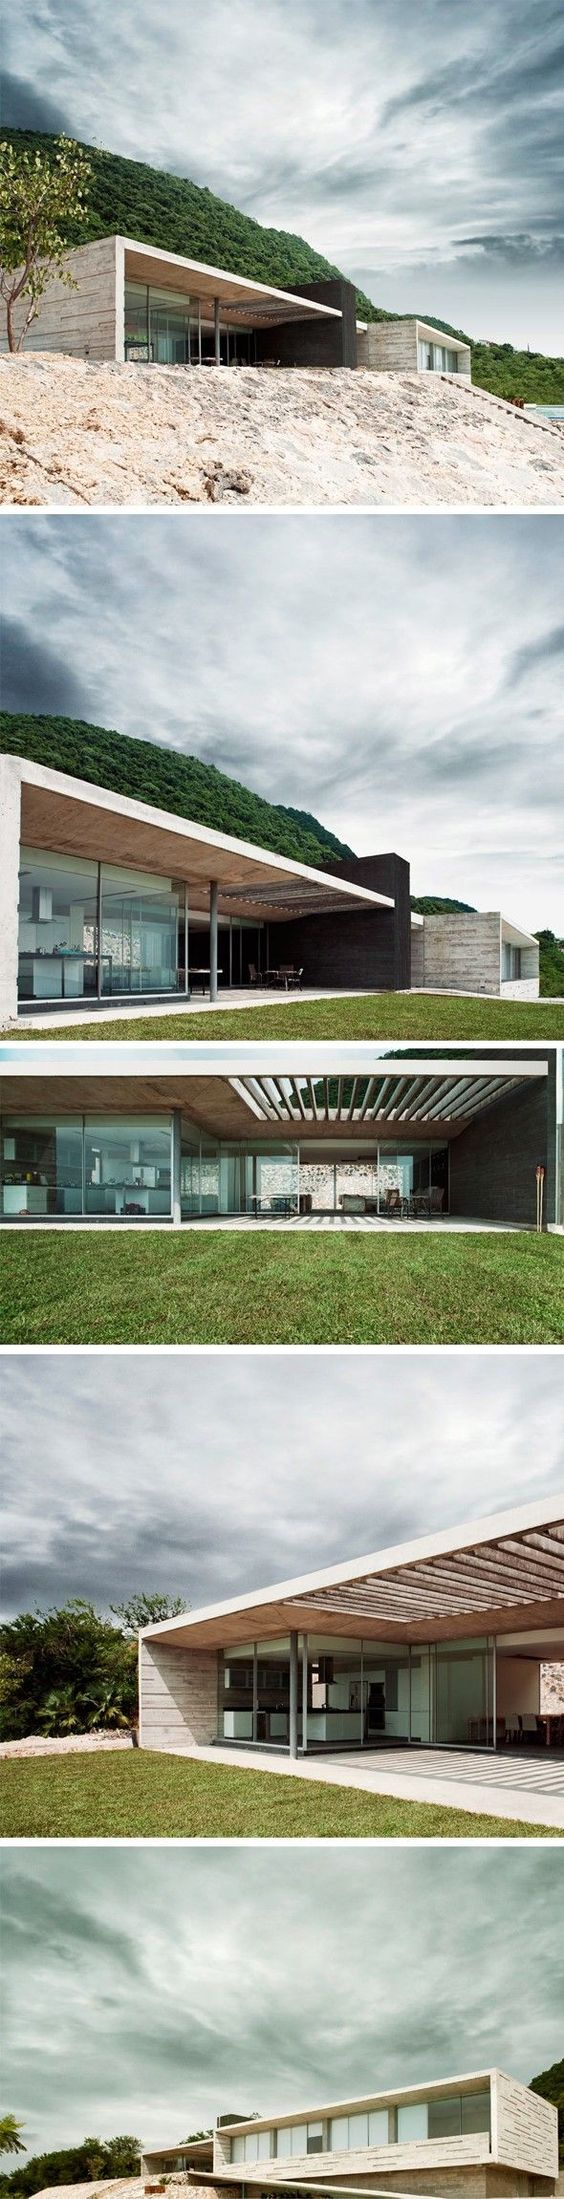 368 best Casas images on Pinterest   Dream homes, Dream houses and ...